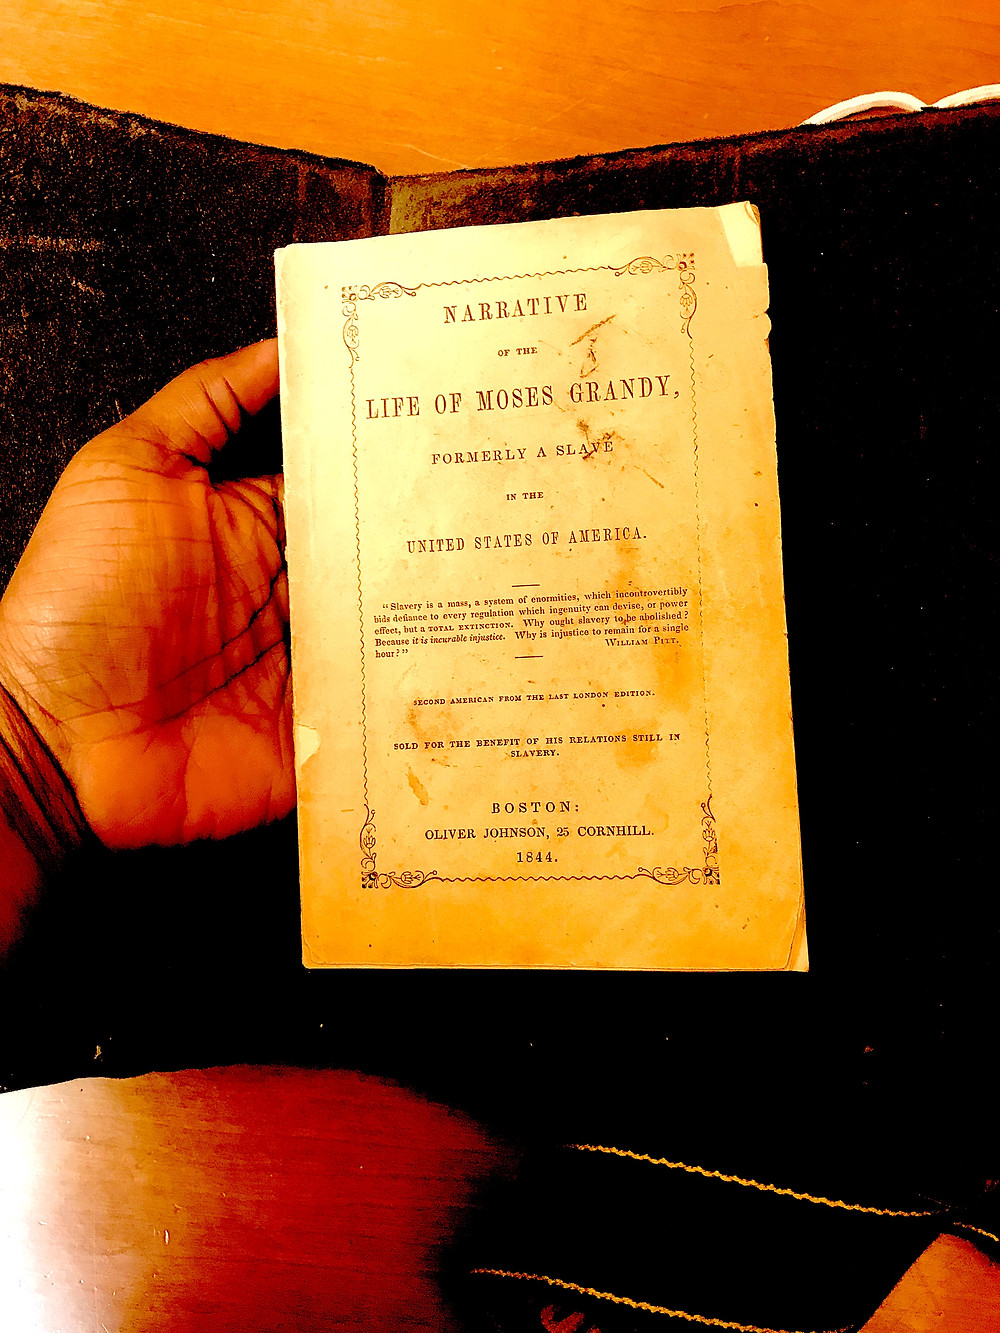 Holding the 1844 edition of Moses Grandy's narrative of enslavement. Albert and Shirley Small Special Collections, University of Virginia.